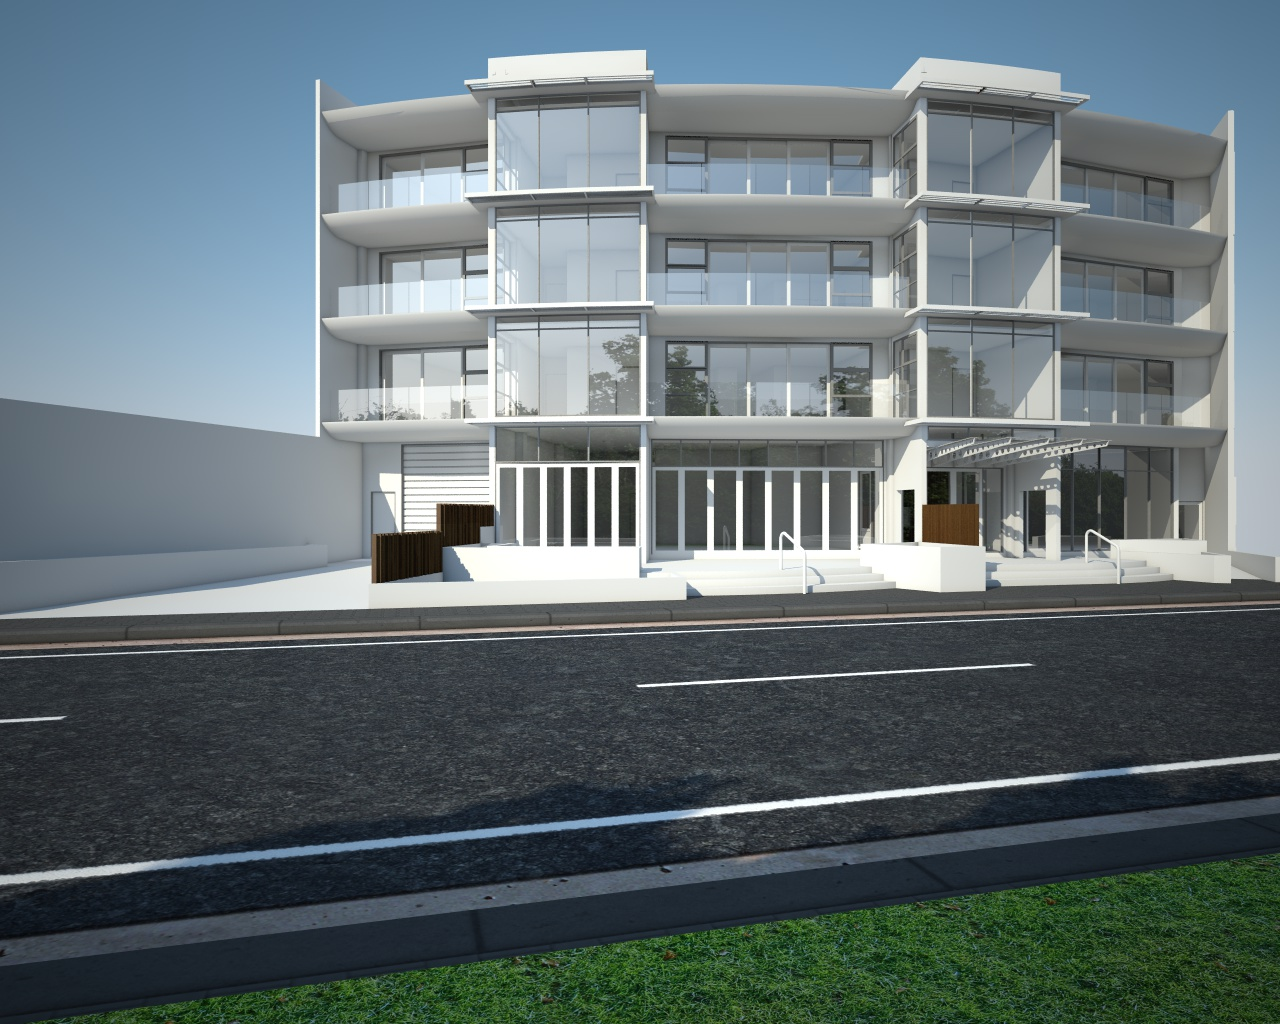 beachcroft apartments property development cba design ltd